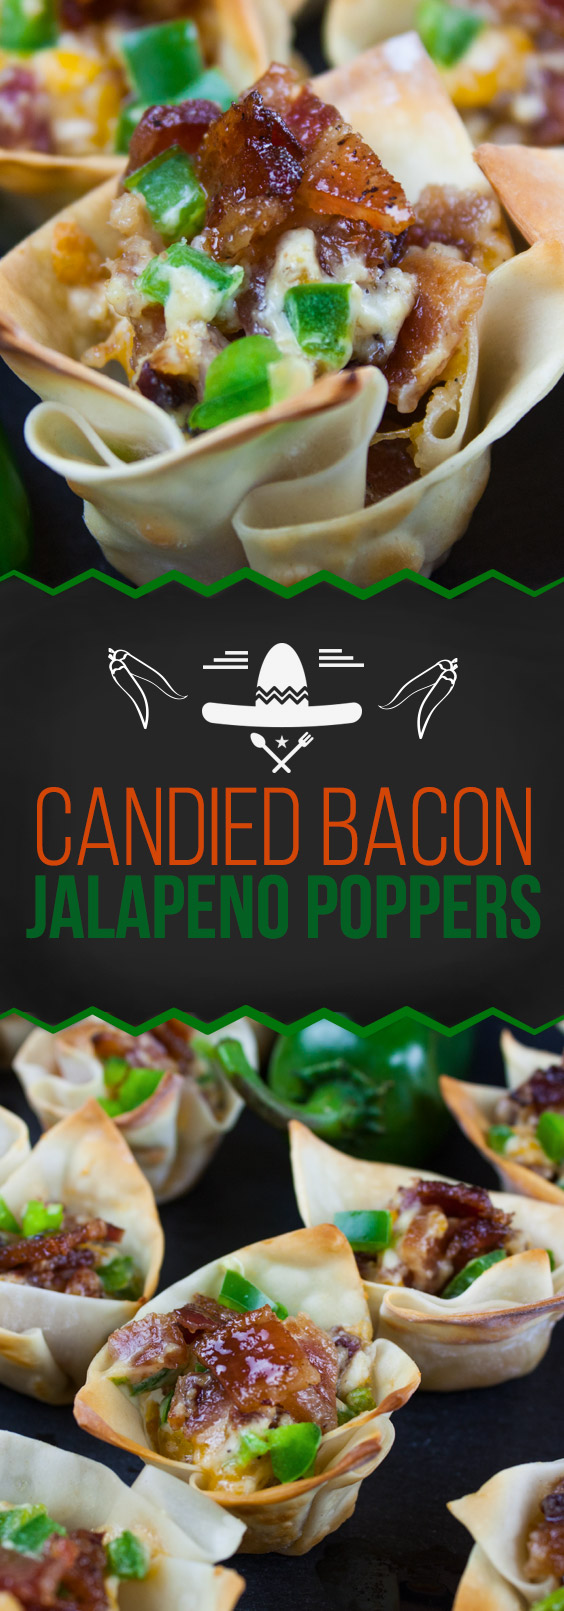 Candied Bacon Jalapeno Poppers - Jalapeno Poppers ramped up with candied bacon. You have sweet, savory, spicy and all the wonderful various textures which gives you the perfect bite. Amazingly delicious!